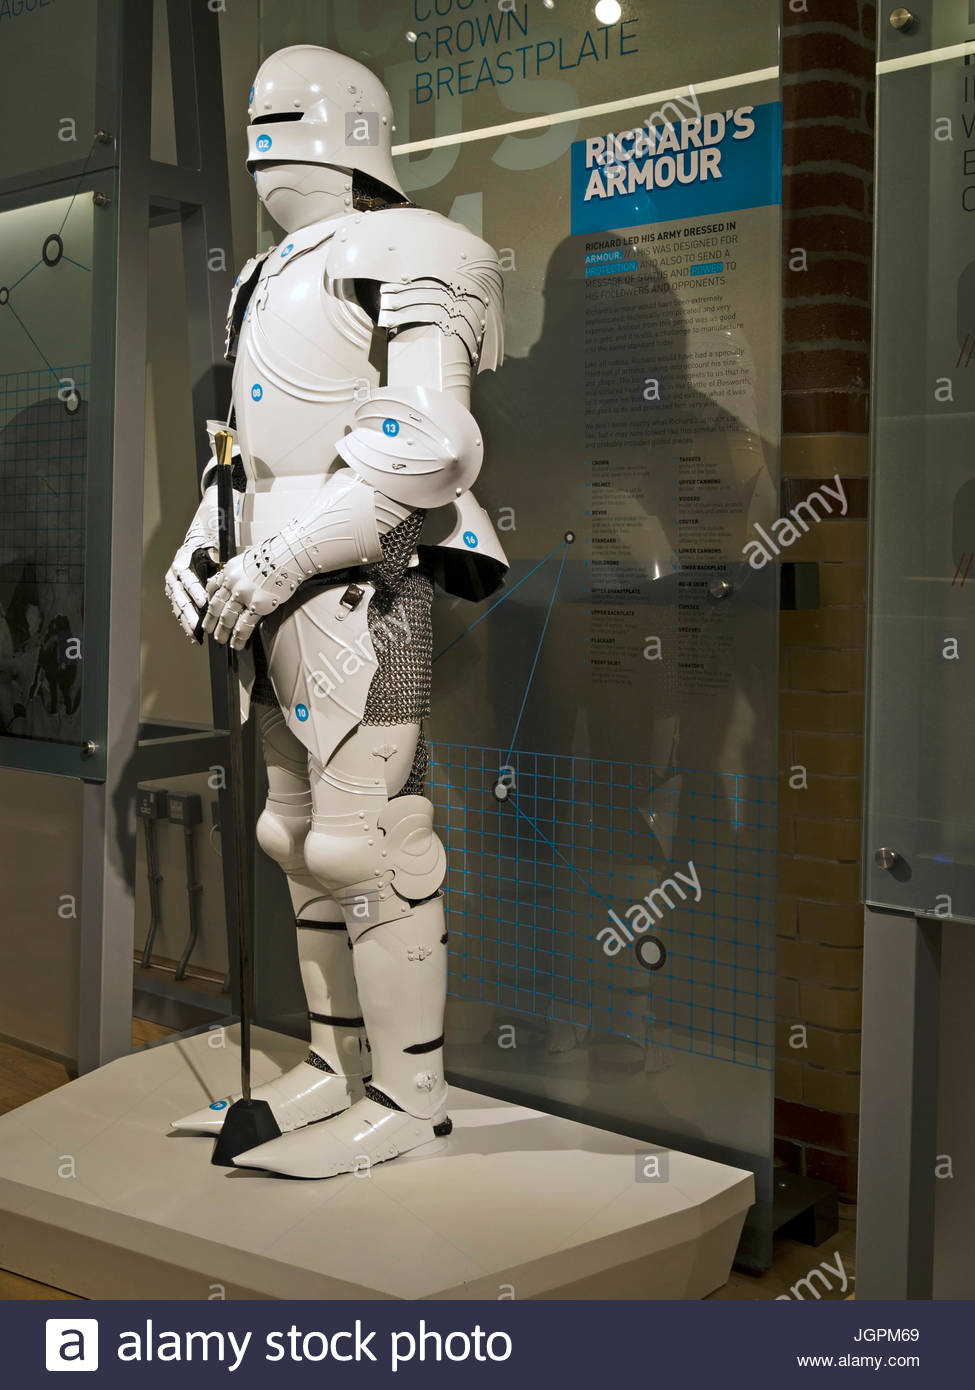 Illustrative reconstruction of King Richard's medieval suit of armour, King Richard III Visitor Centre Exhibition, - Stock Image